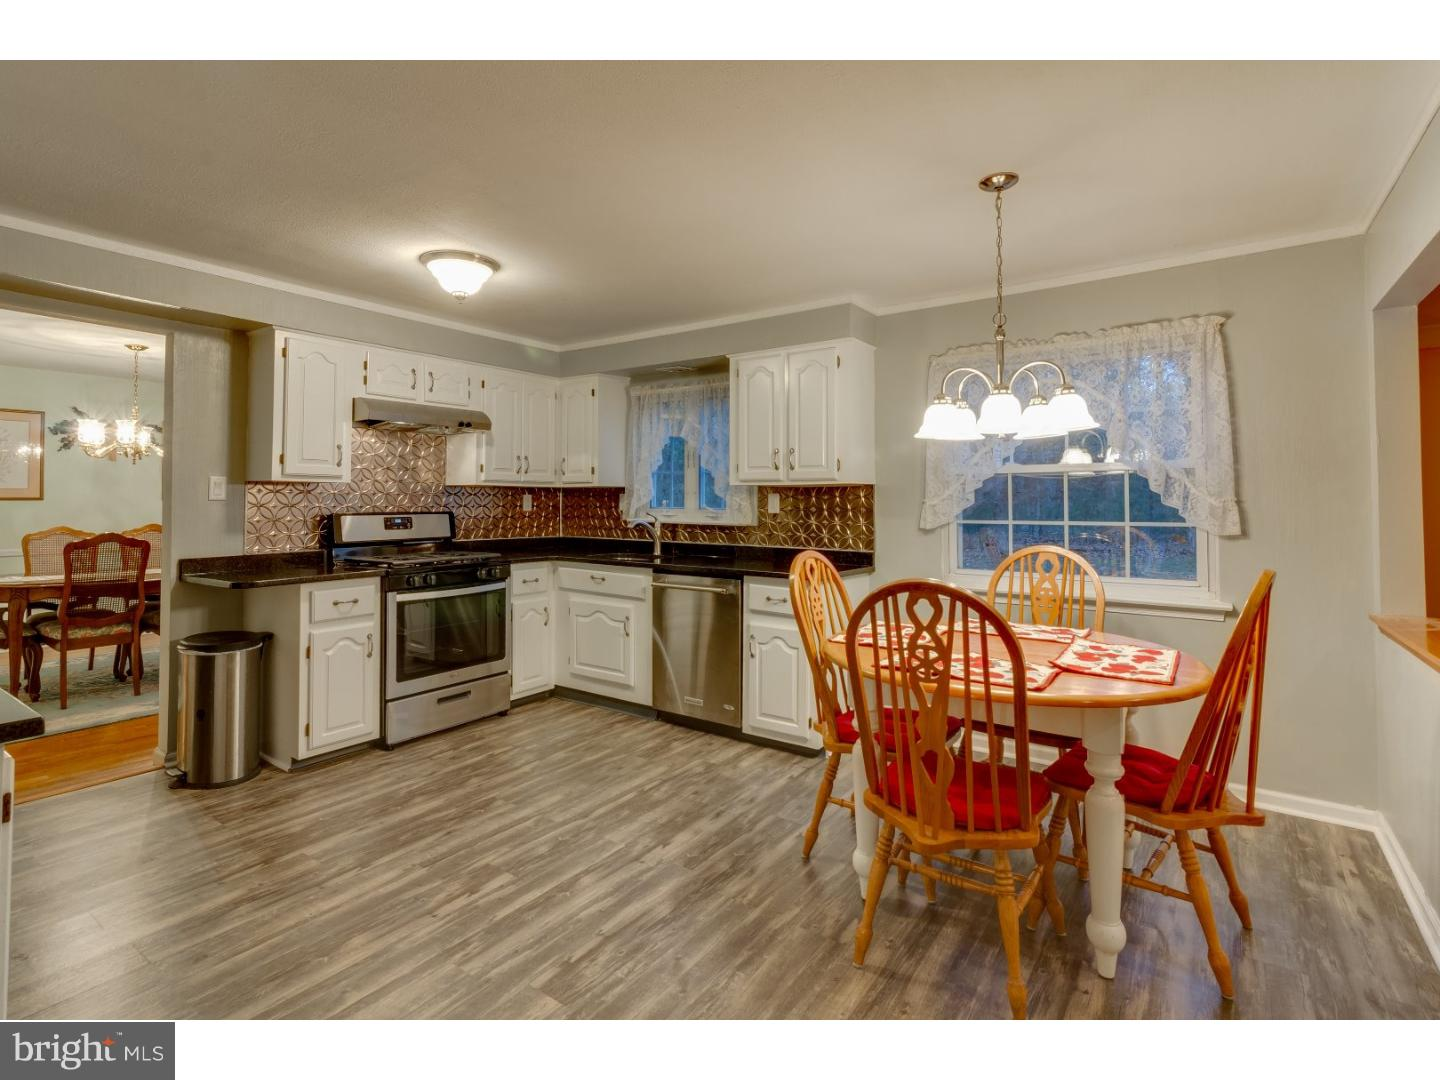 Single Family Home for Sale at 1005 SHAWNEE Lane Shamong, New Jersey 08088 United States